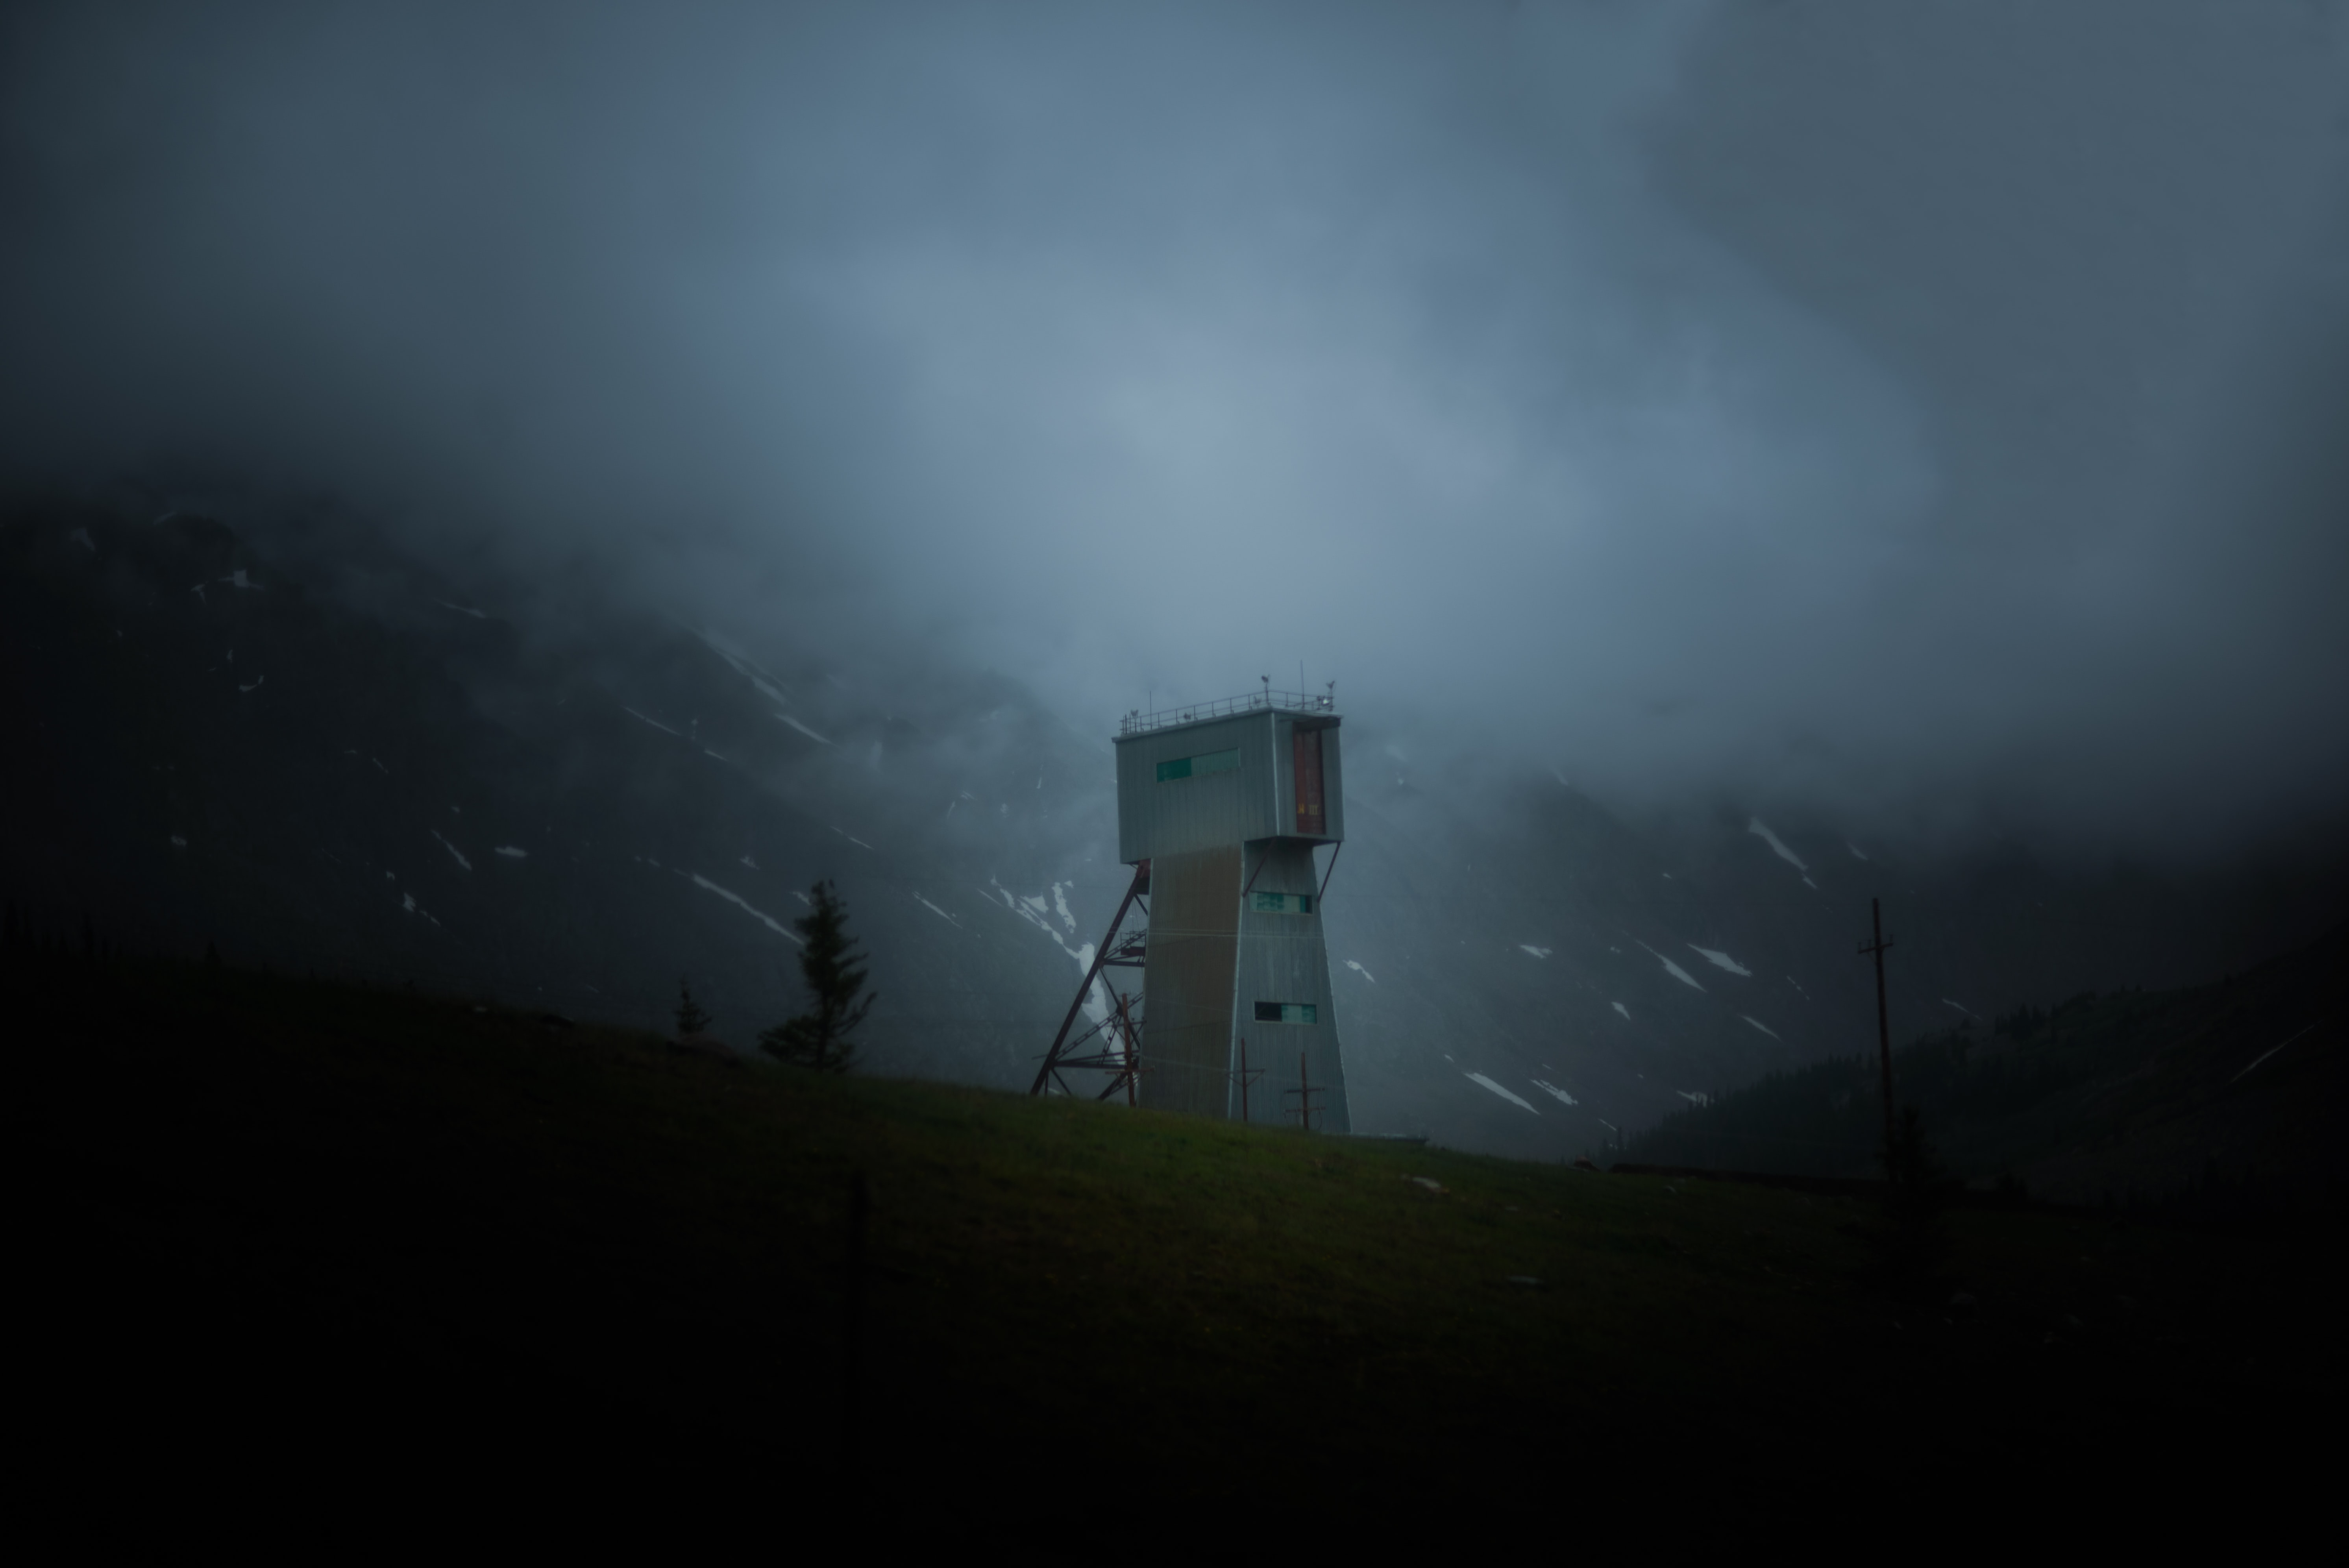 Desolate lookout tower in rocky mountainside on a stormy night